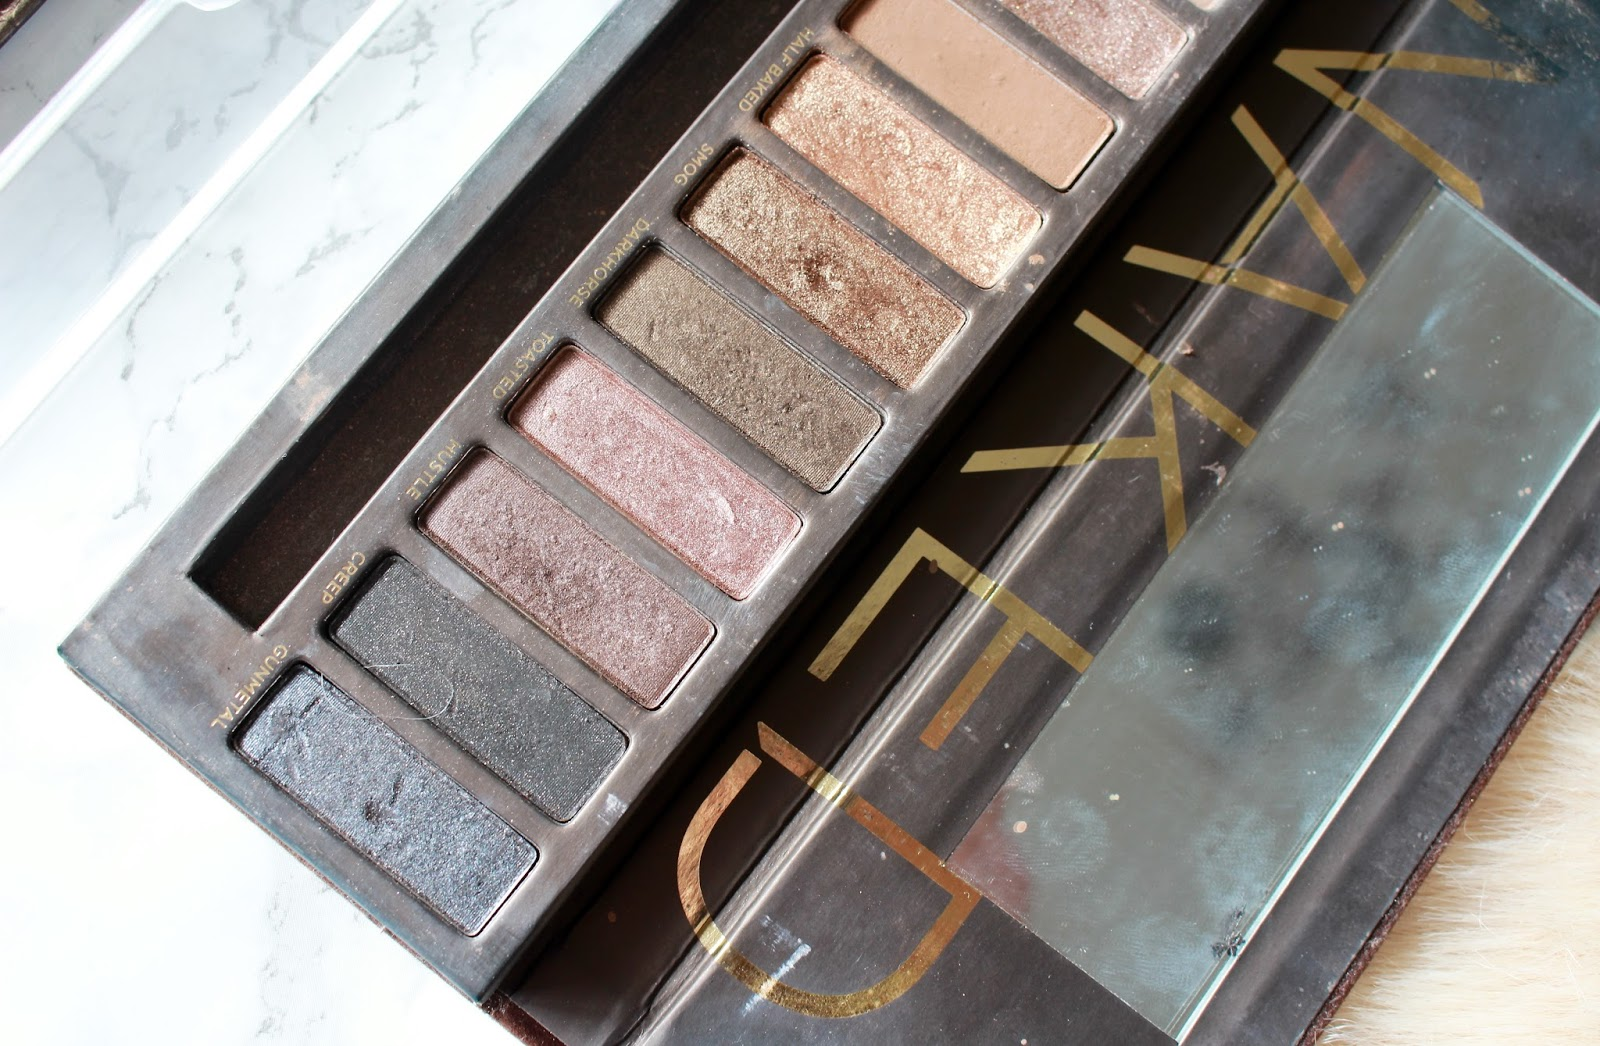 The Best Neutral Eyeshadow Palettes